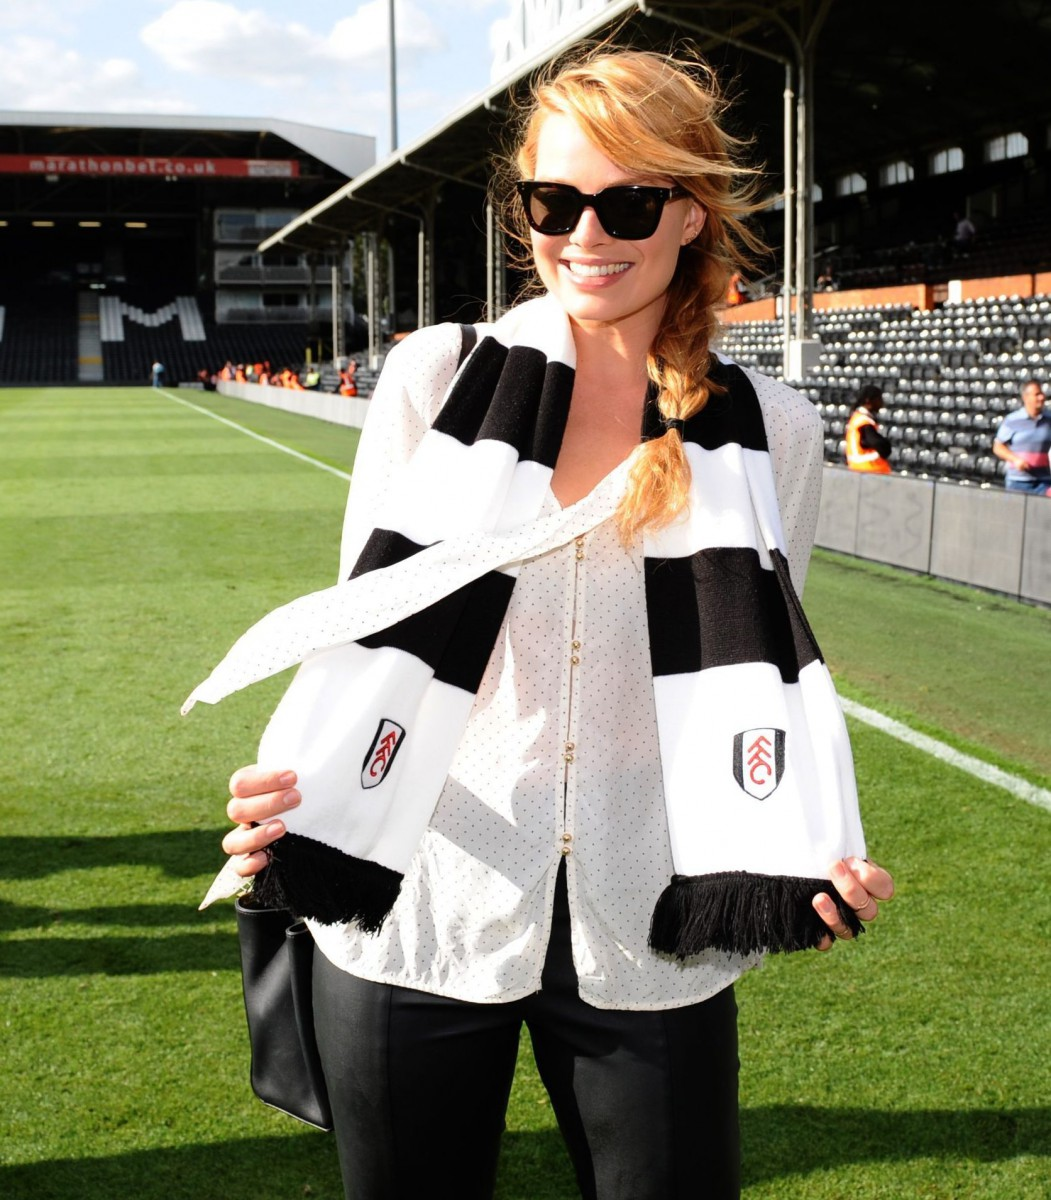 Robbie is a Fulham fan and has been paraded at Craven Cottage